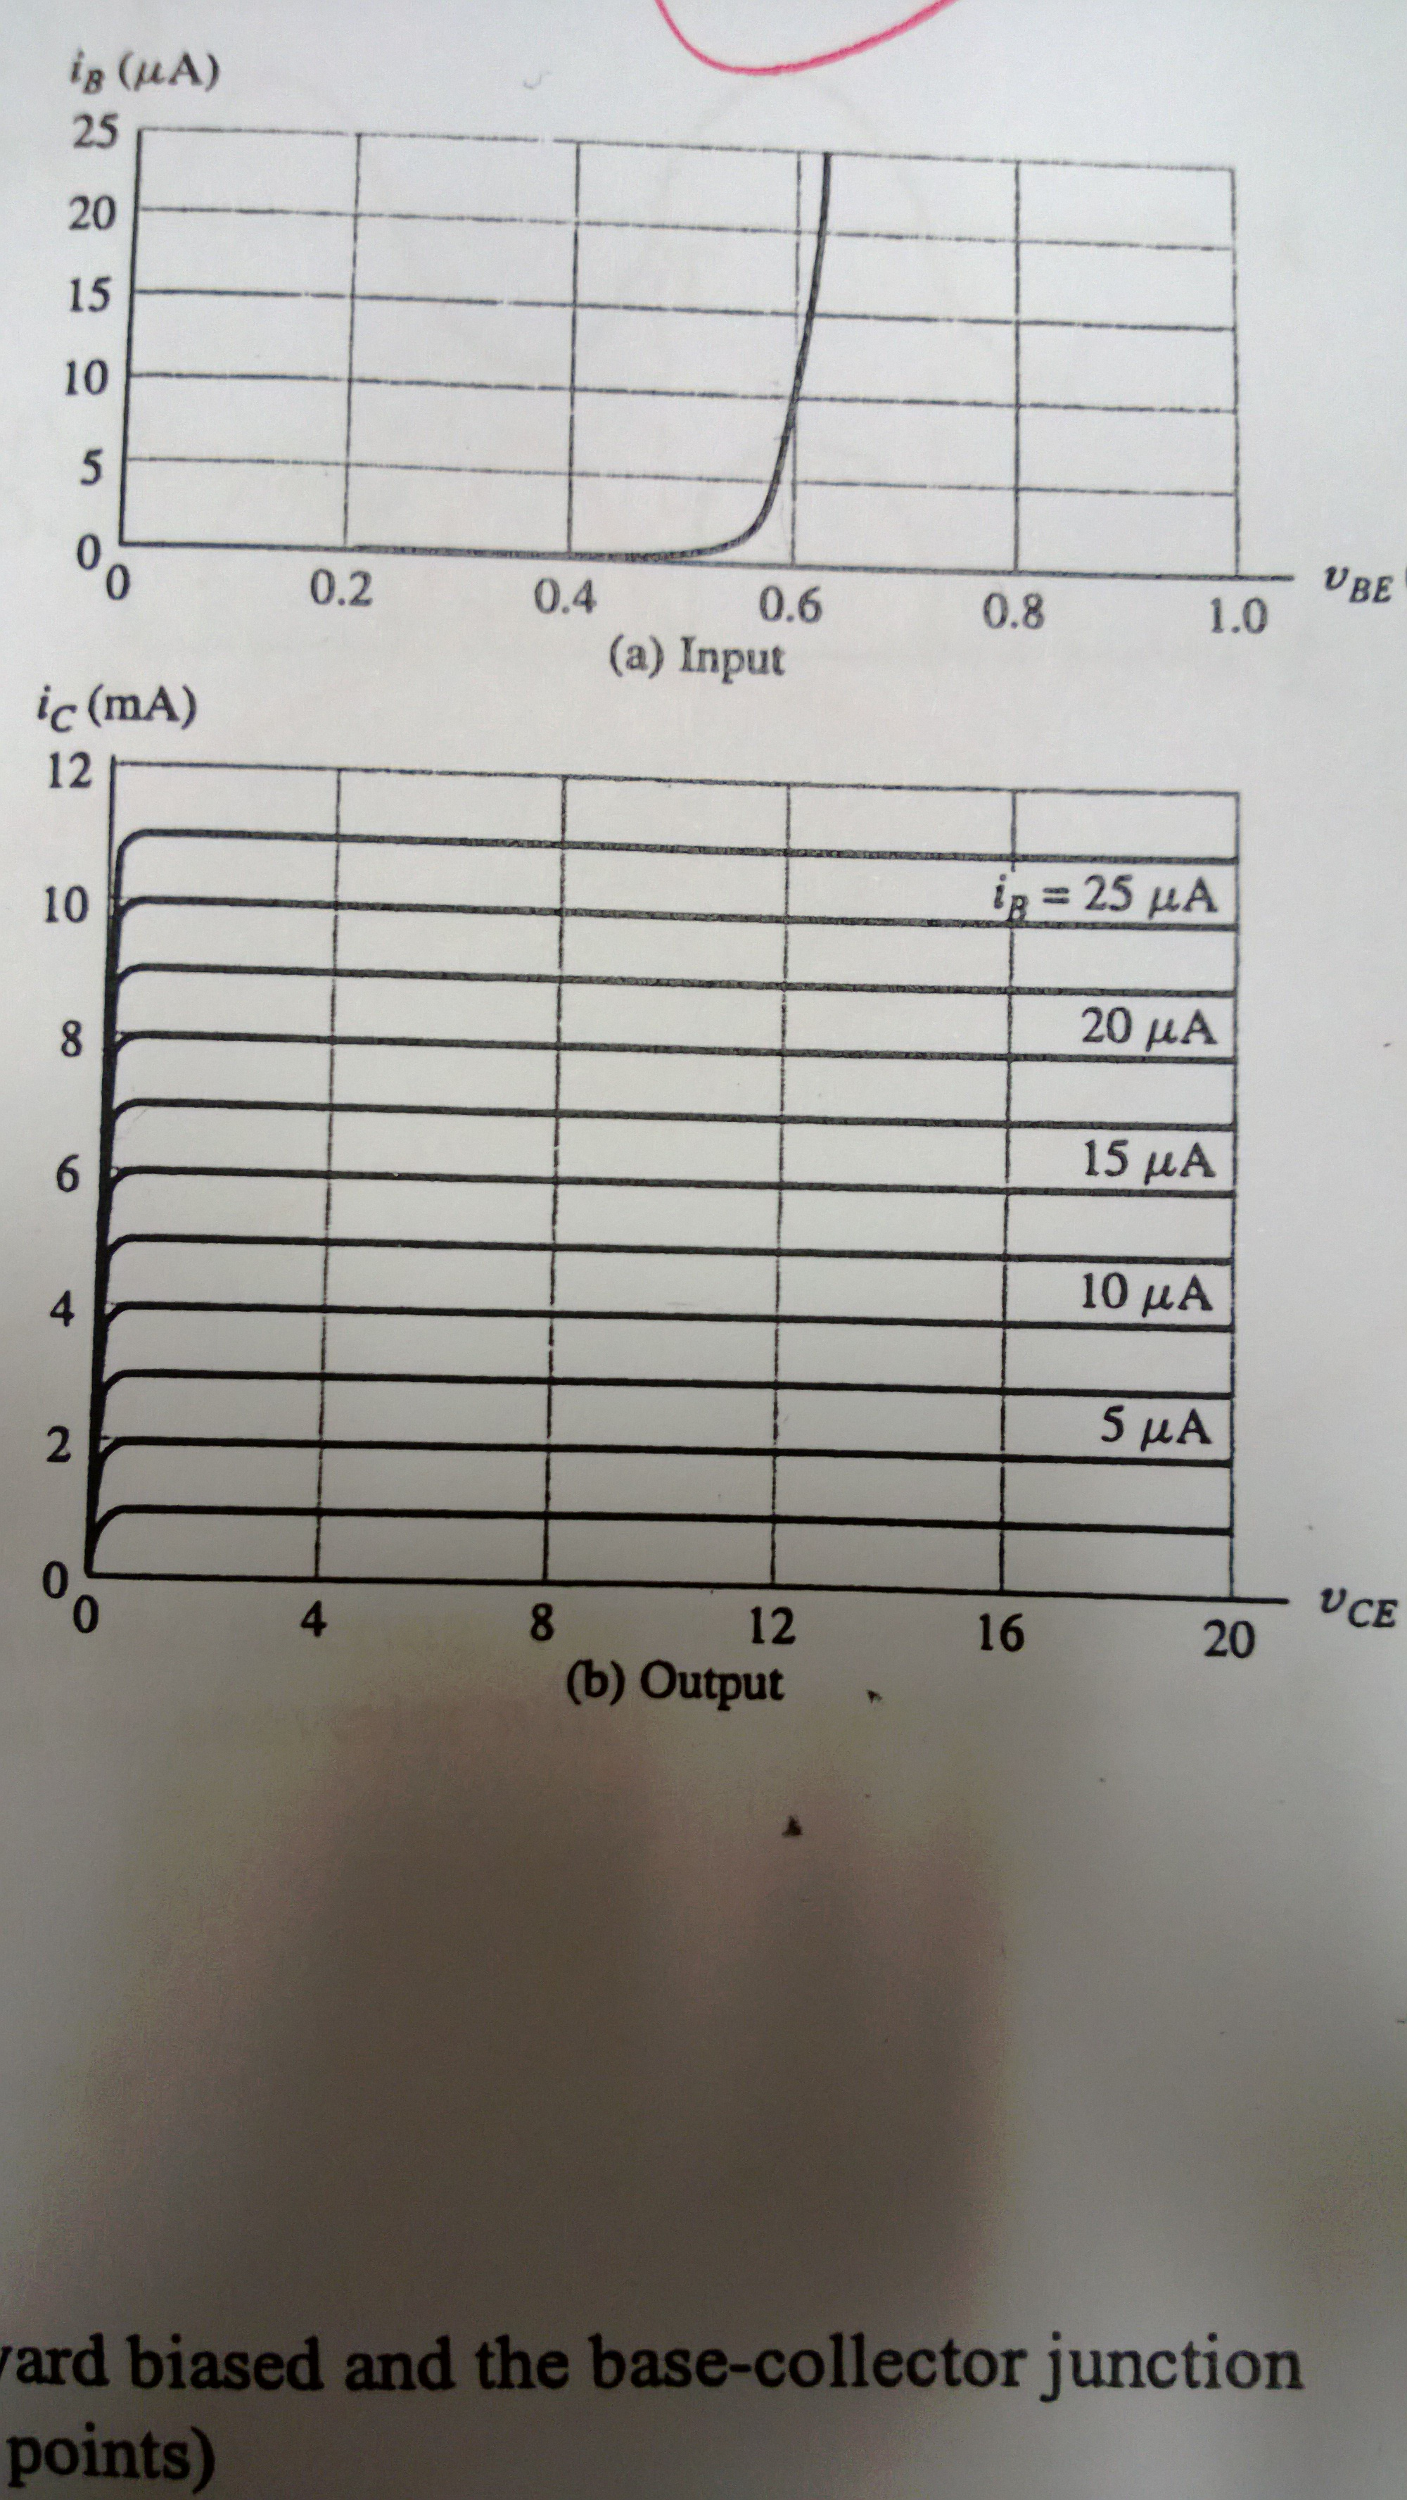 The input and output characteristics of a npn tran